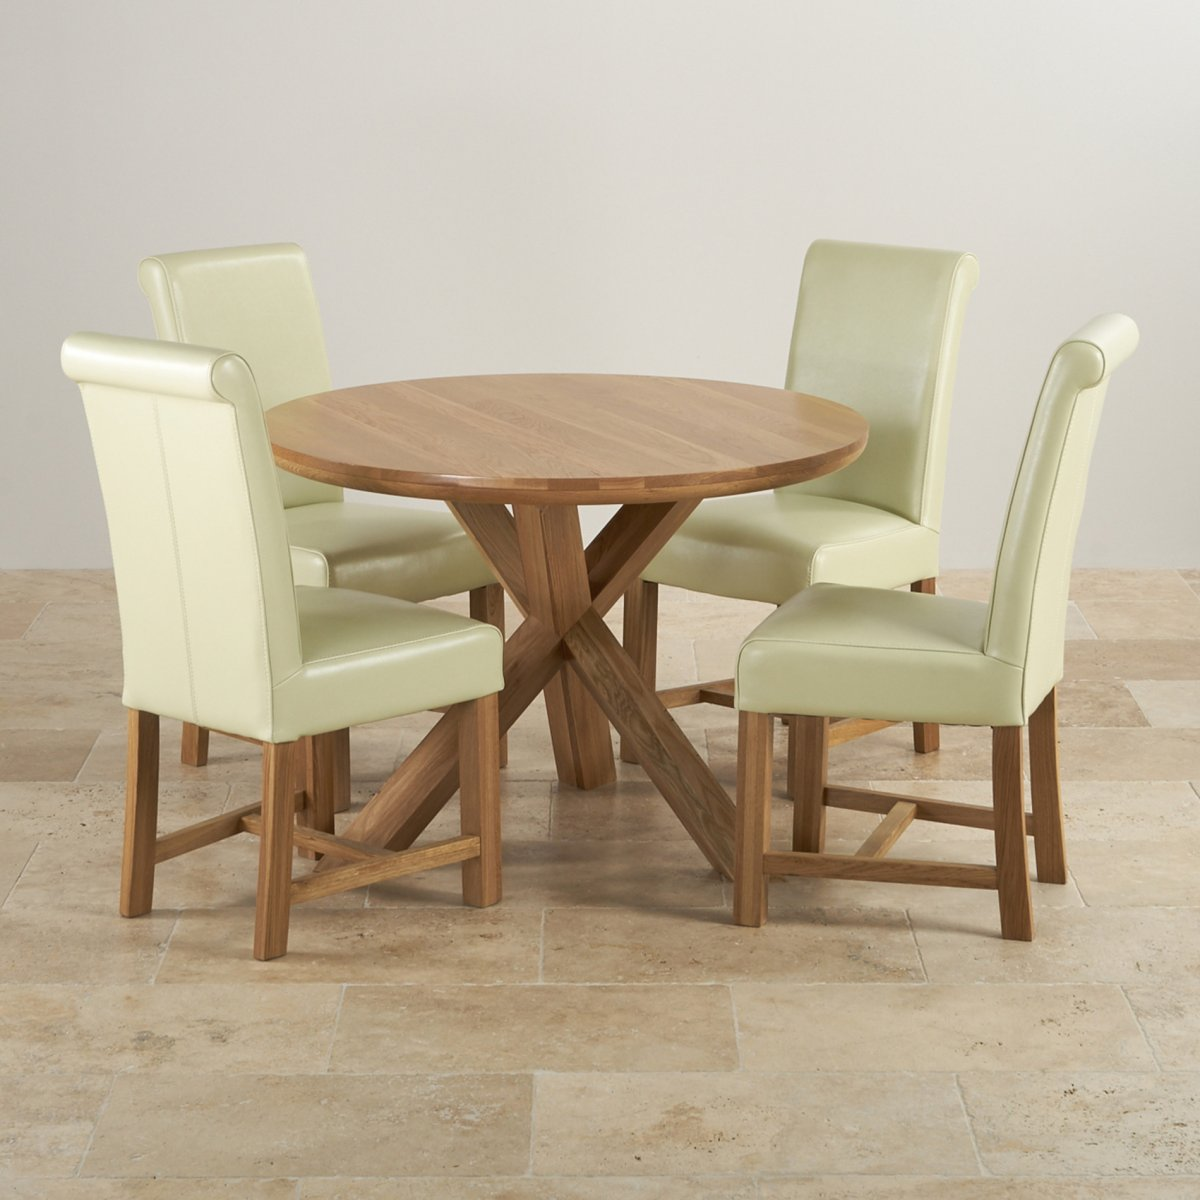 Natural oak round dining set table 4 cream leather chairs for Four chair dining table set